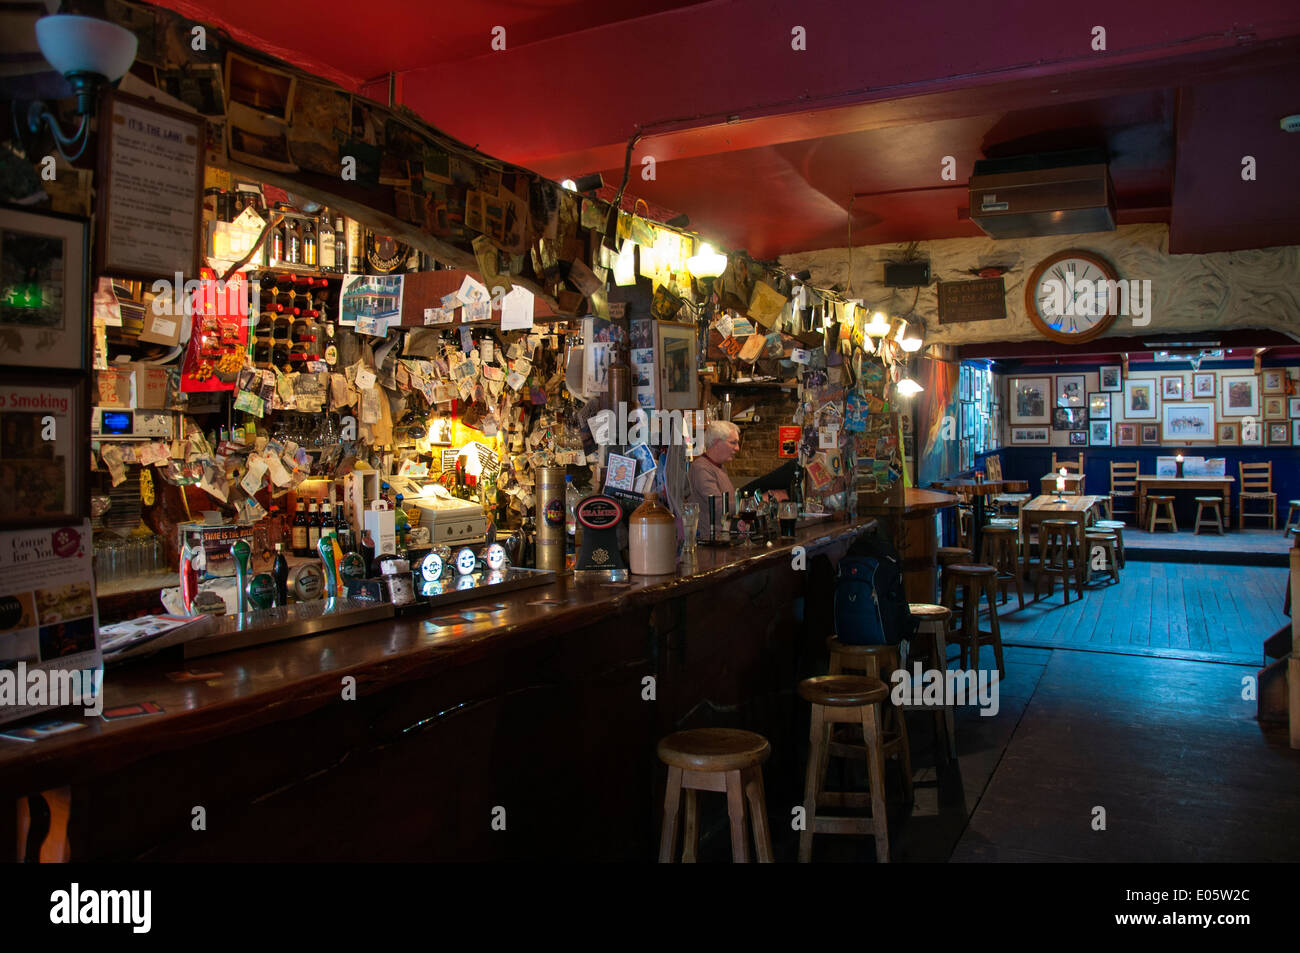 Interior of Corner House Bar in Coburg Street Cork City Munster Ireland - Stock Image